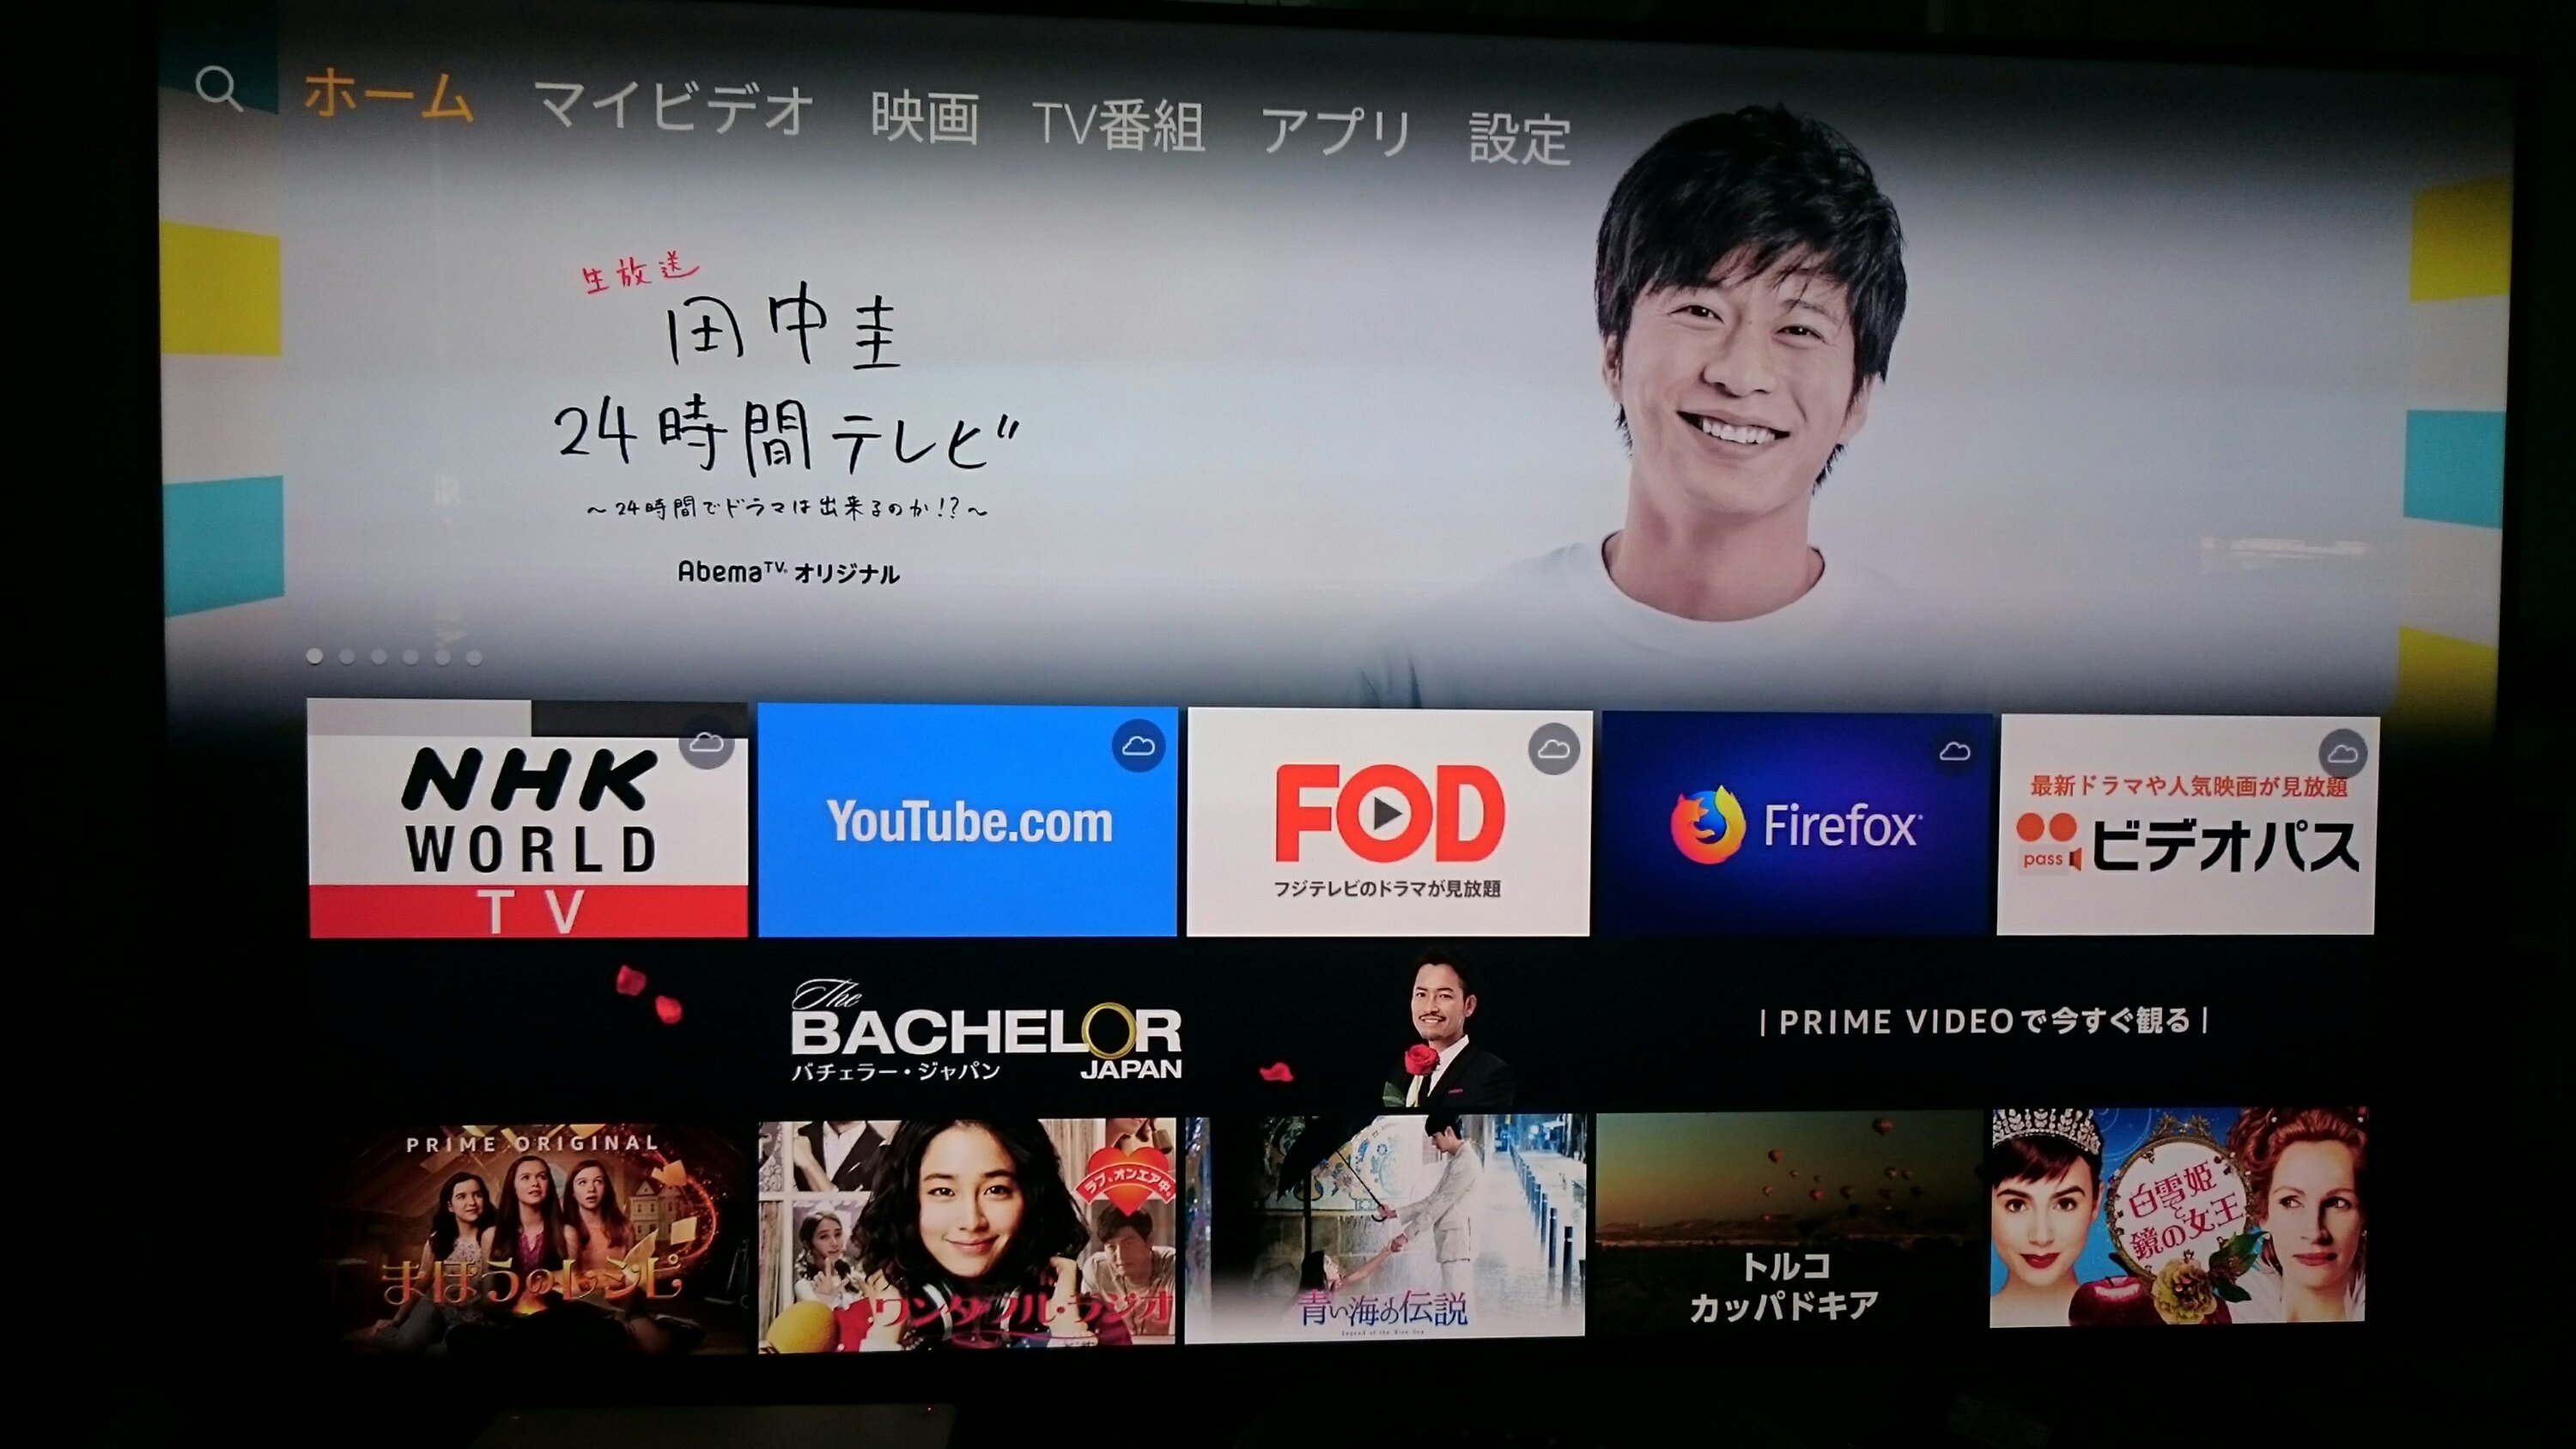 Amazon fire tv stick 4Kのホーム画面